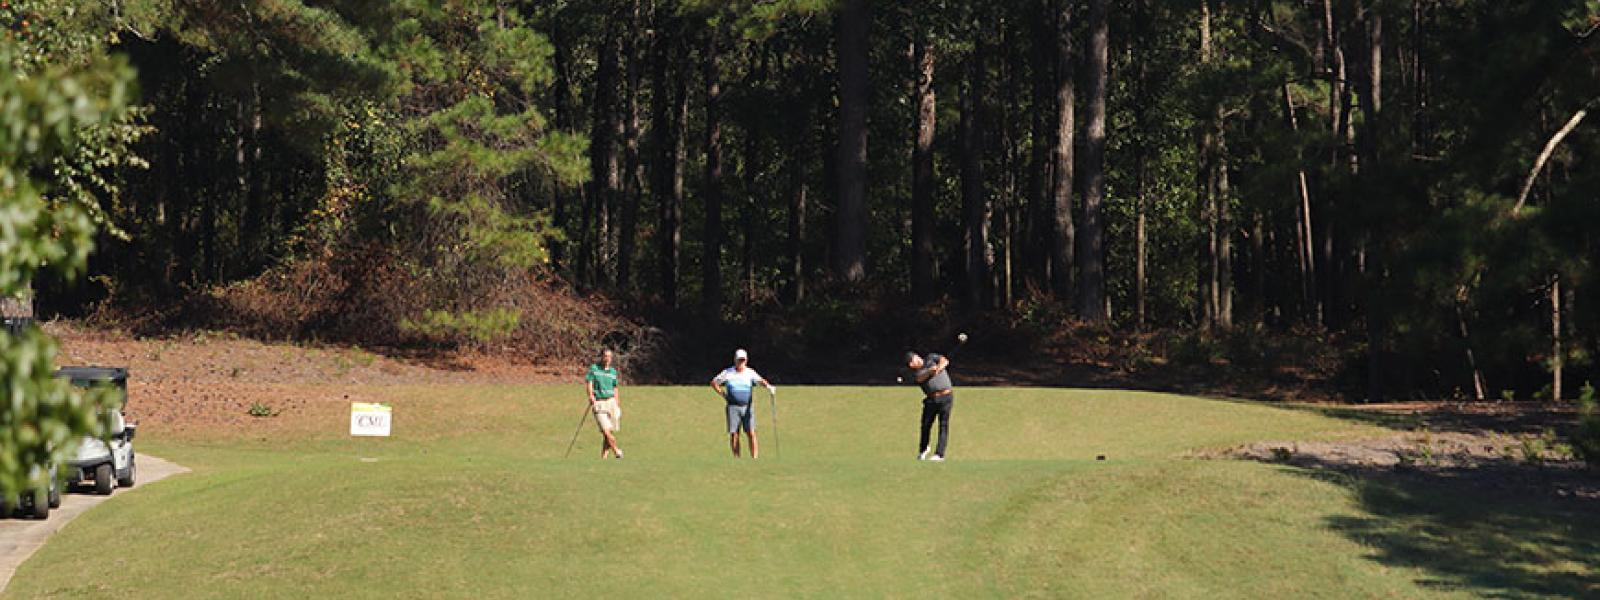 Golfers tee-off at the Columbia Country Club in the CIU Golf Classic